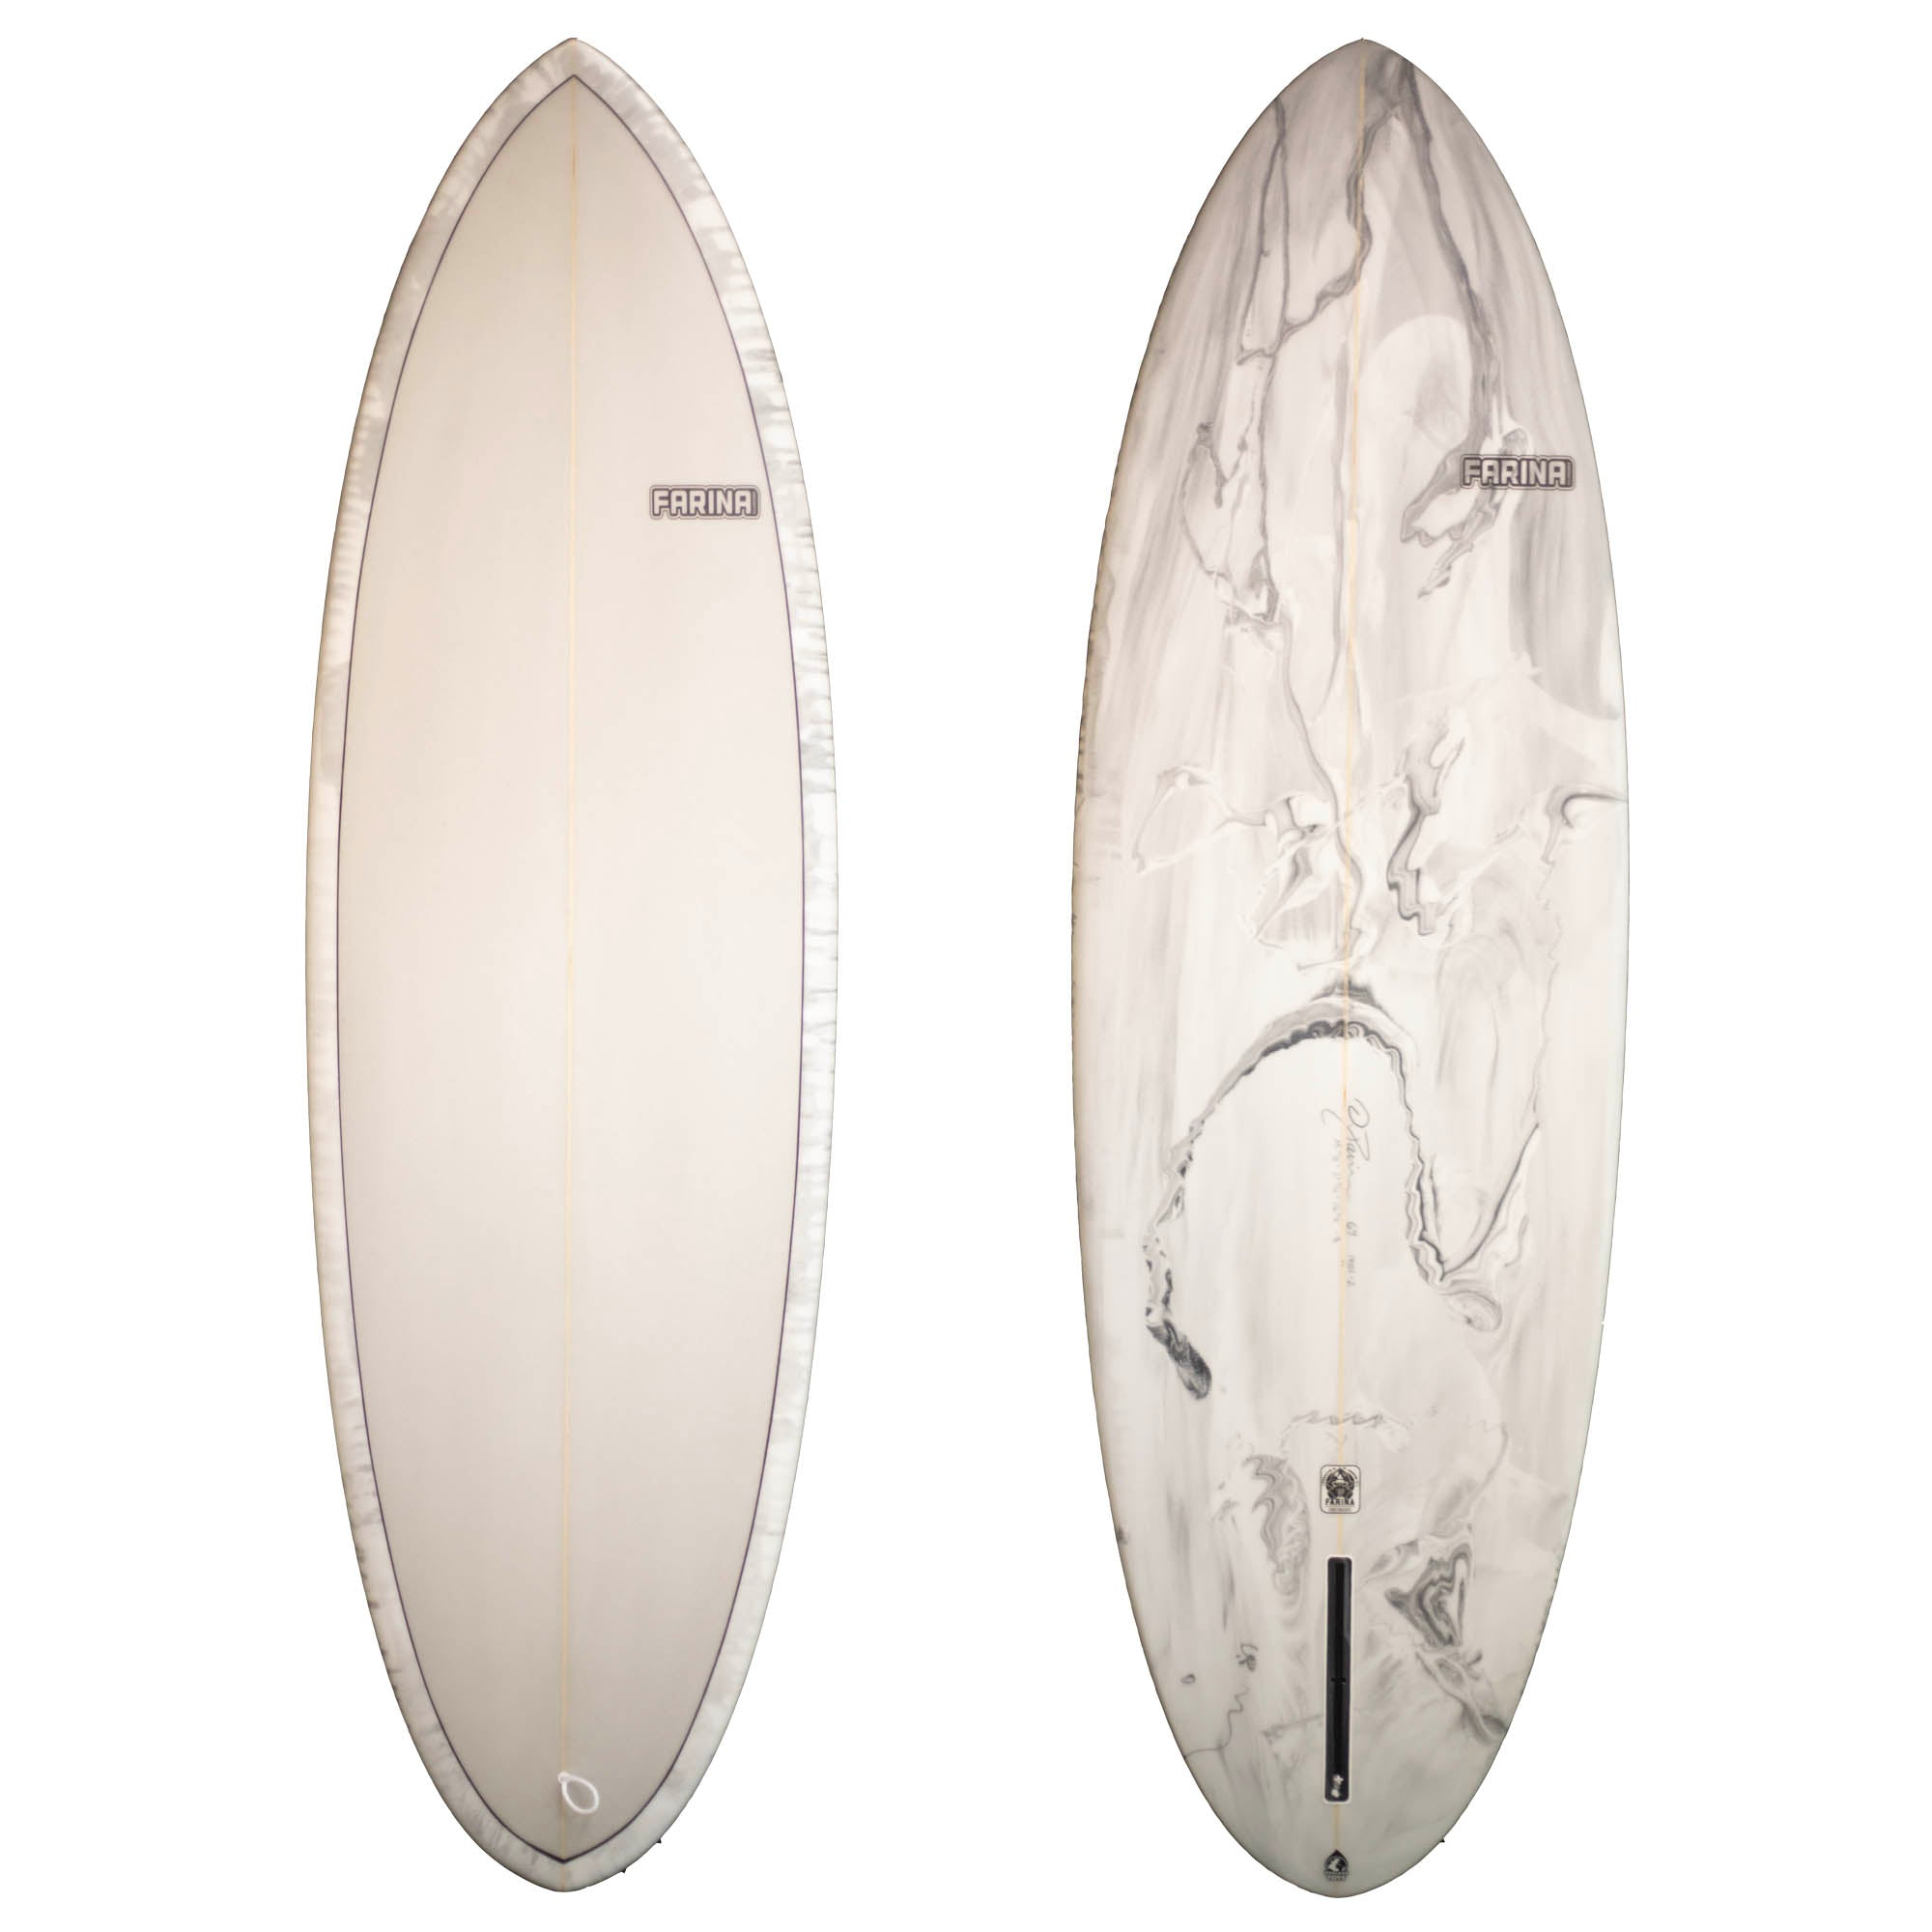 Farina Single Fin Surfboard